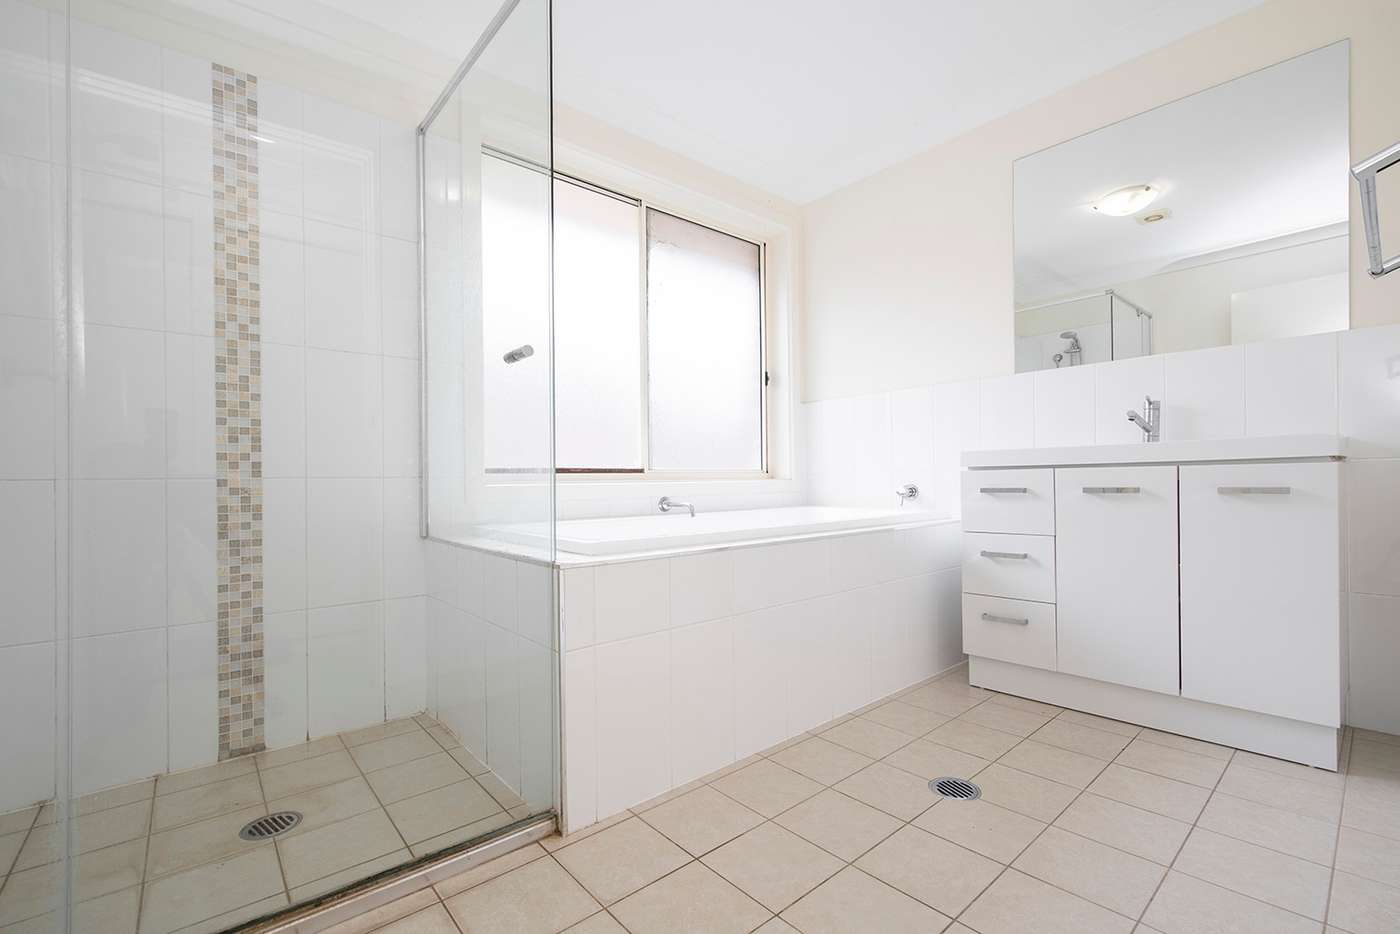 Sixth view of Homely house listing, 15 Pendula Way, Denman NSW 2328